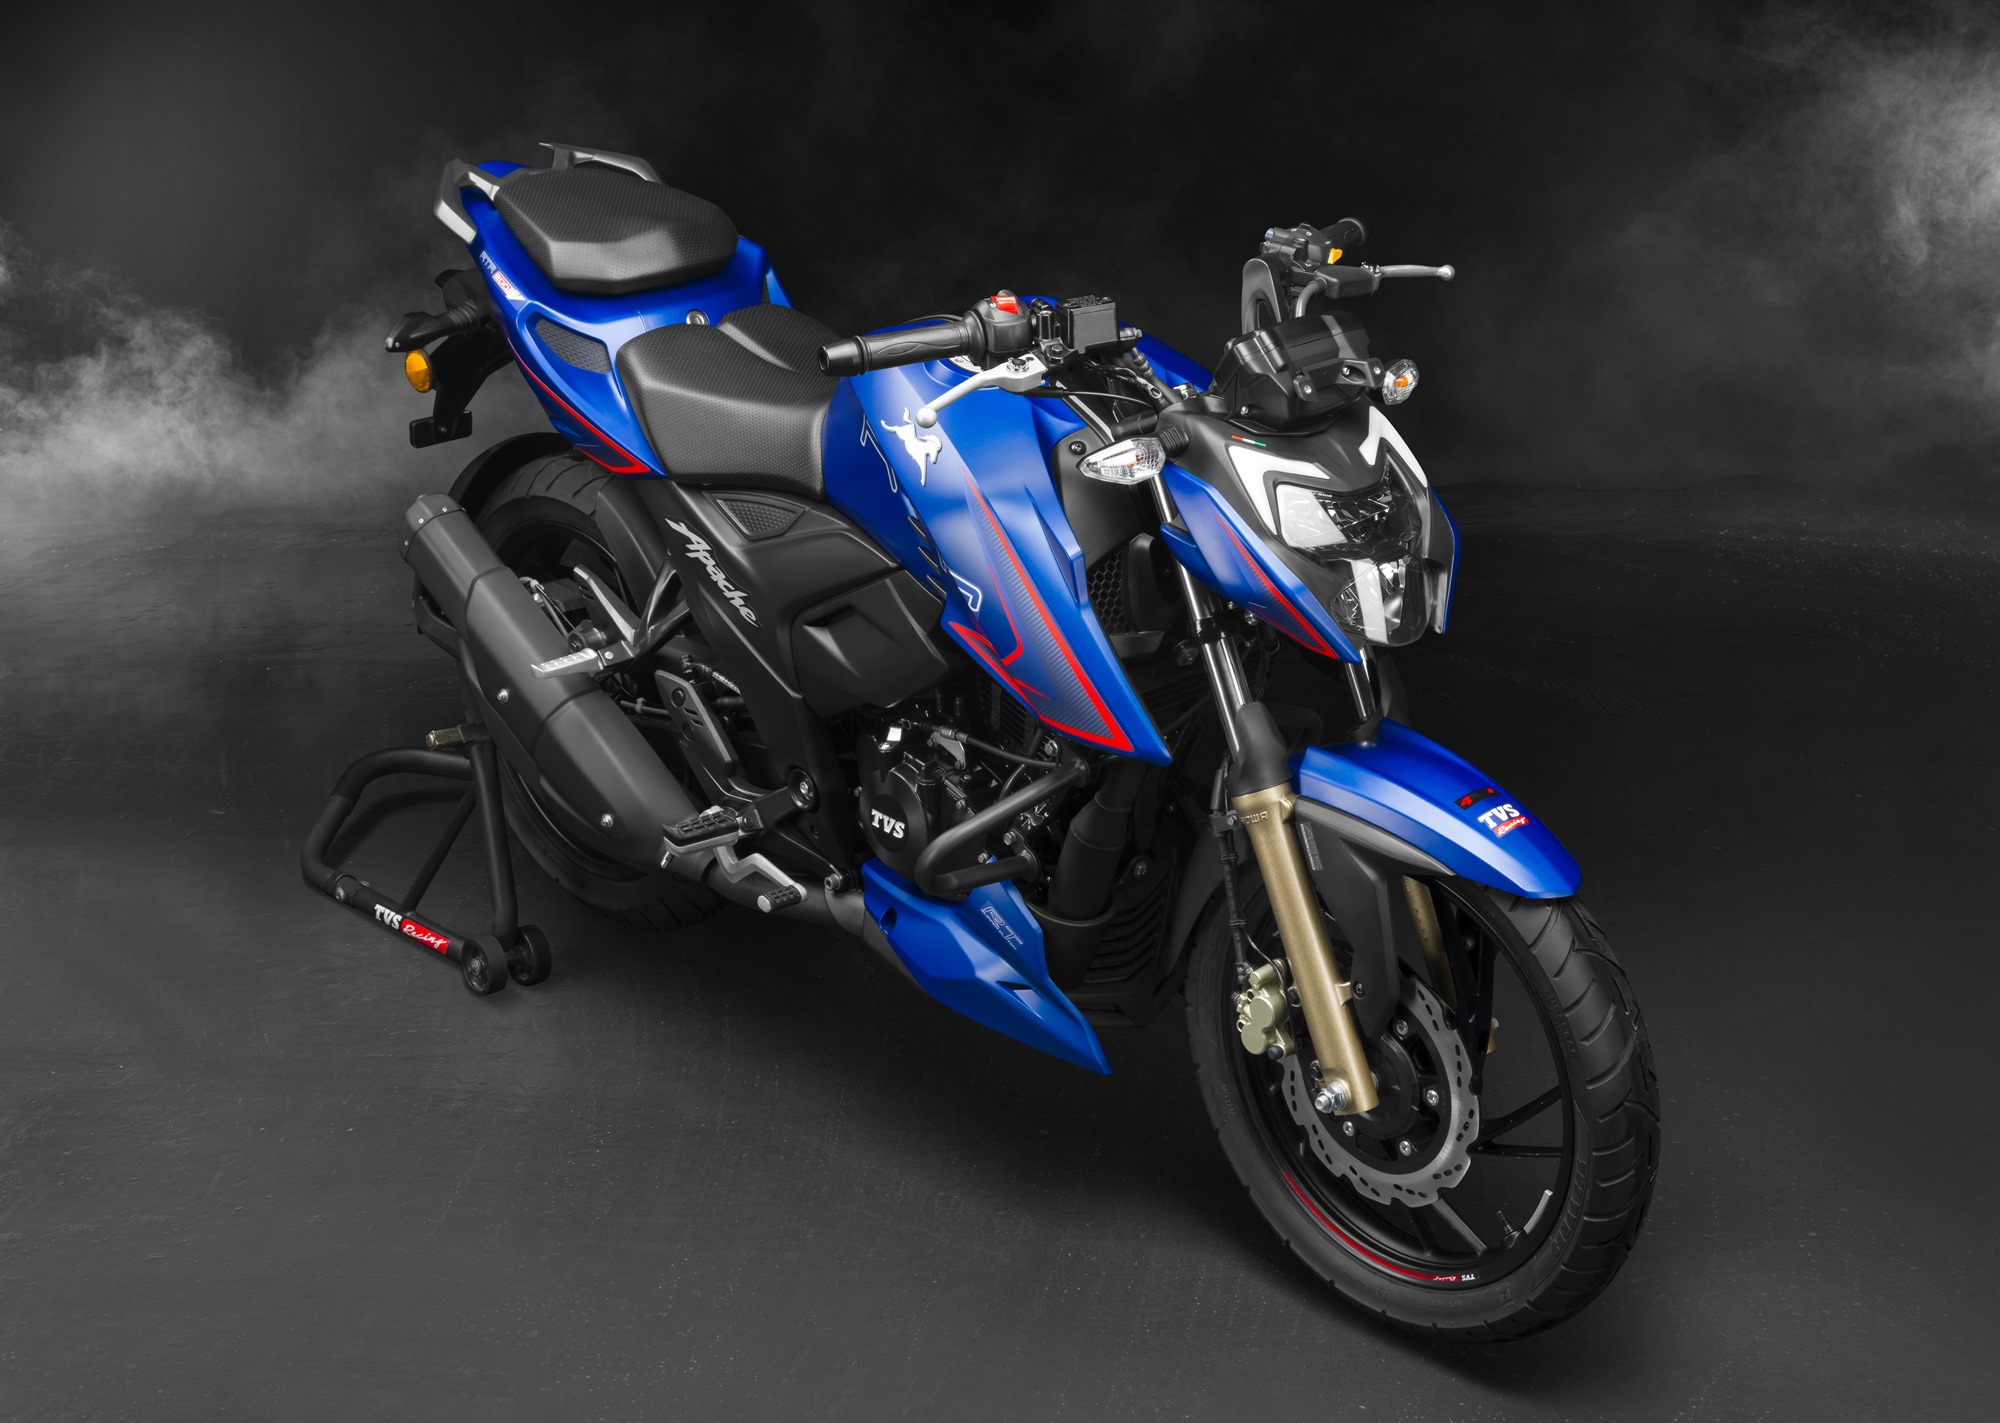 2021 TVS Apache RTR 200 4V gets riding modes, adjustable suspensions and levers